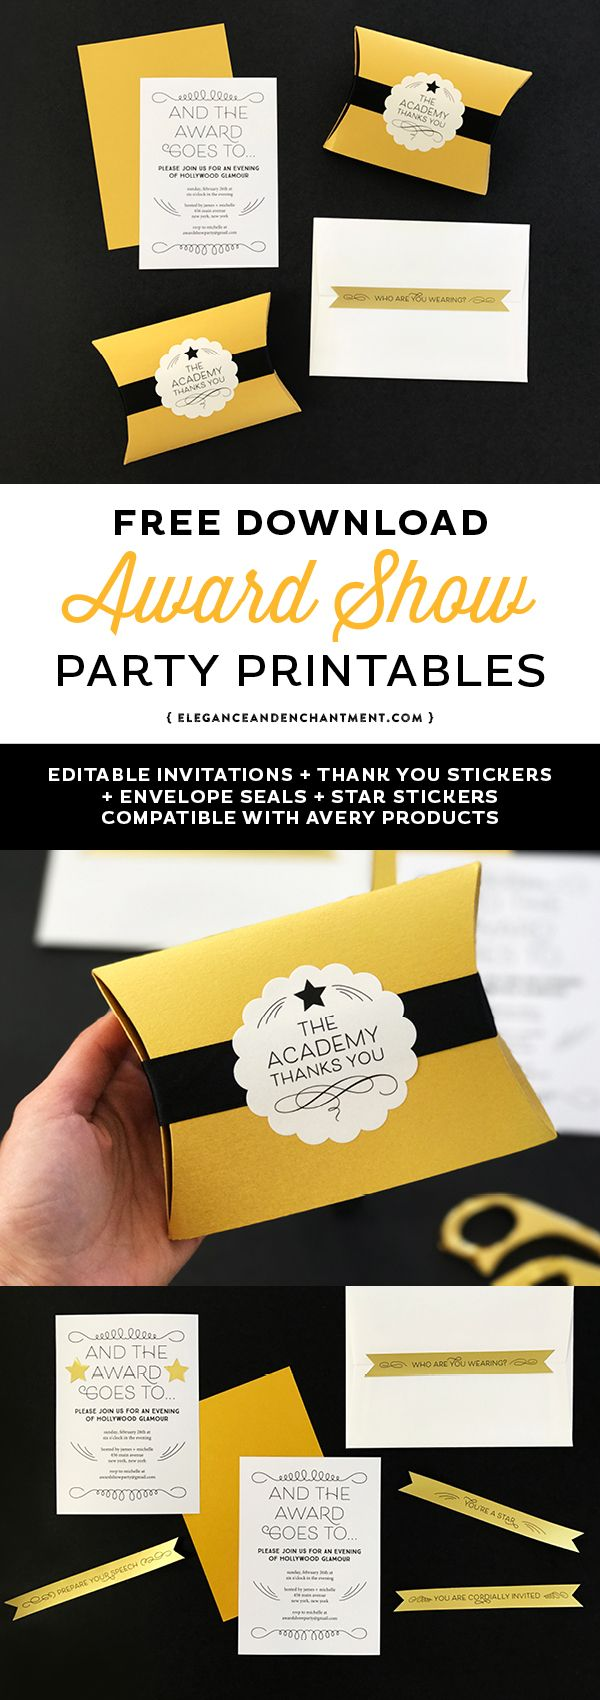 Get ready for the Oscars, Emmys, Golden Globes, Grammys and Tony Awards with these free award show party printables. Includes an editable invitation, envelope seals, star stickers and thank you sticker seals. Compatible with Avery Products 22836, 4396 and